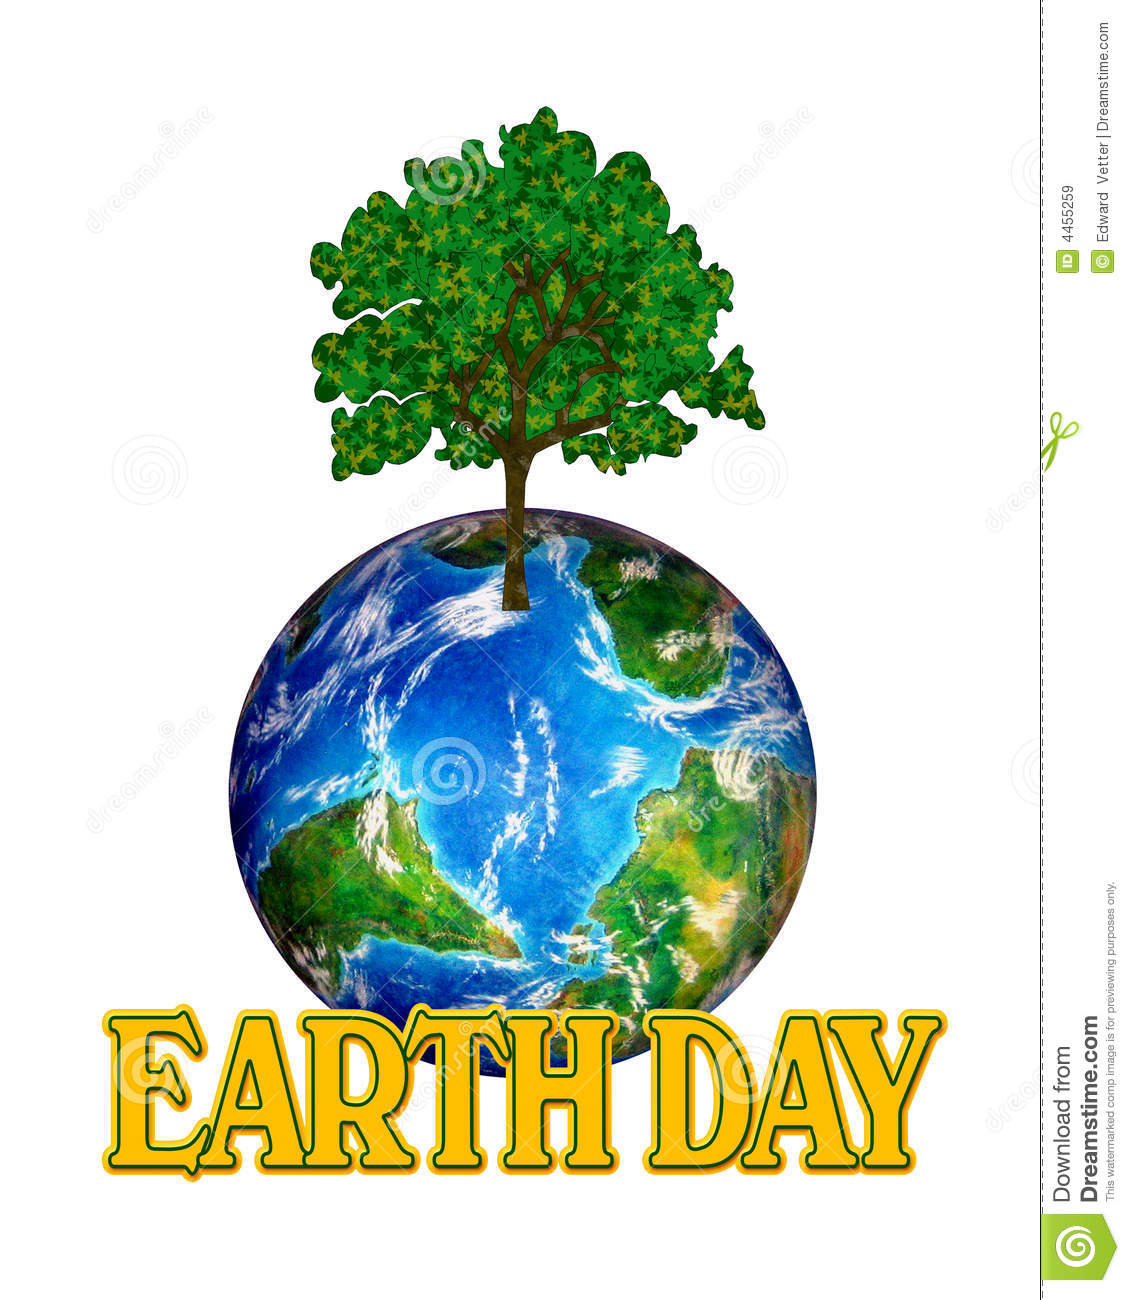 Earth Day Graphic Royalty Free Stock Images - Image: 4455259